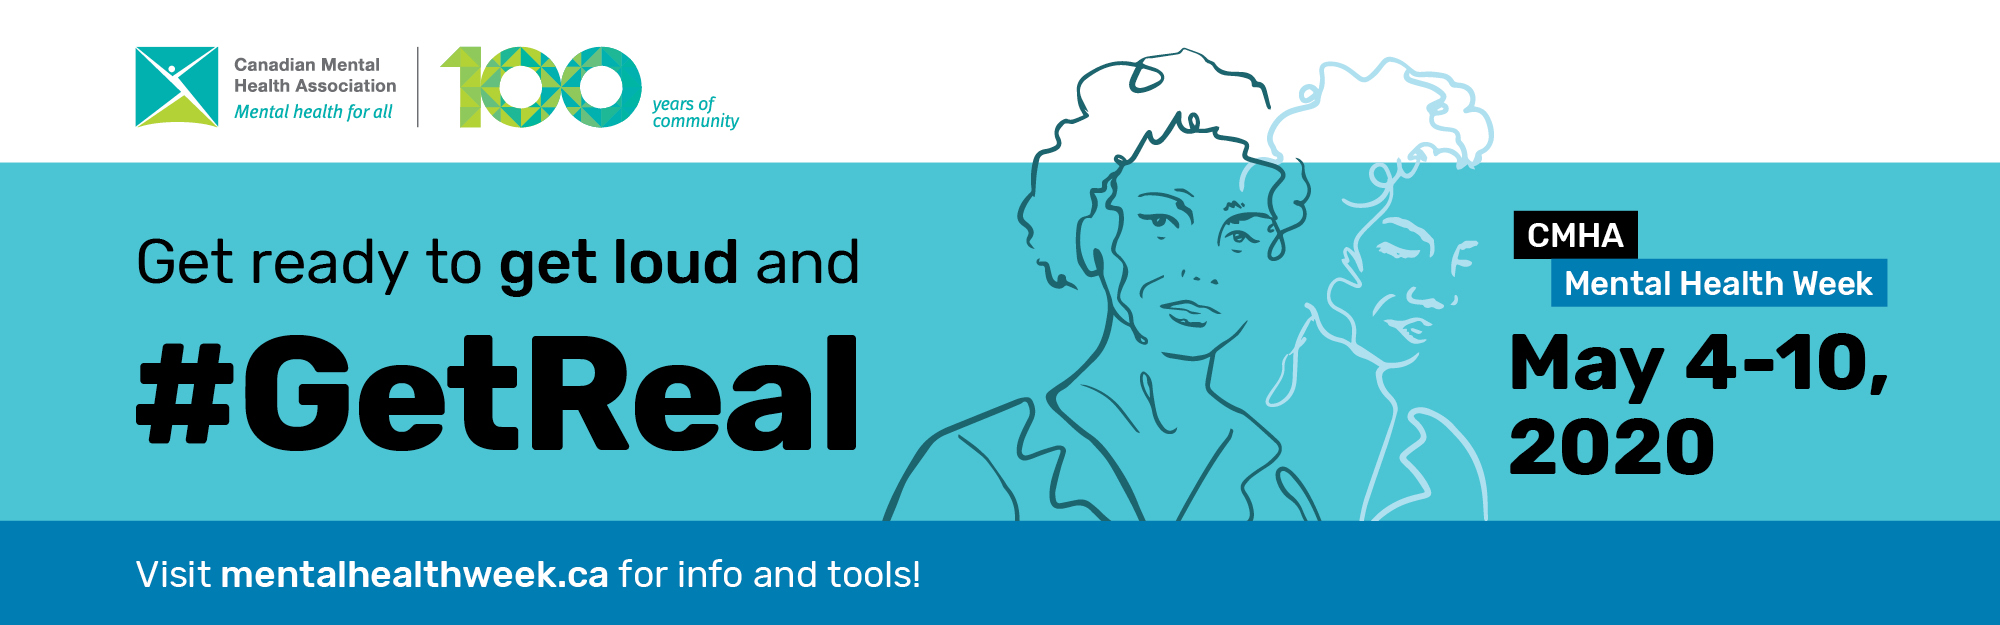 For Mental Health Week, the Canadian Mental Health Association promotes social connection to protect mental health in these difficult times